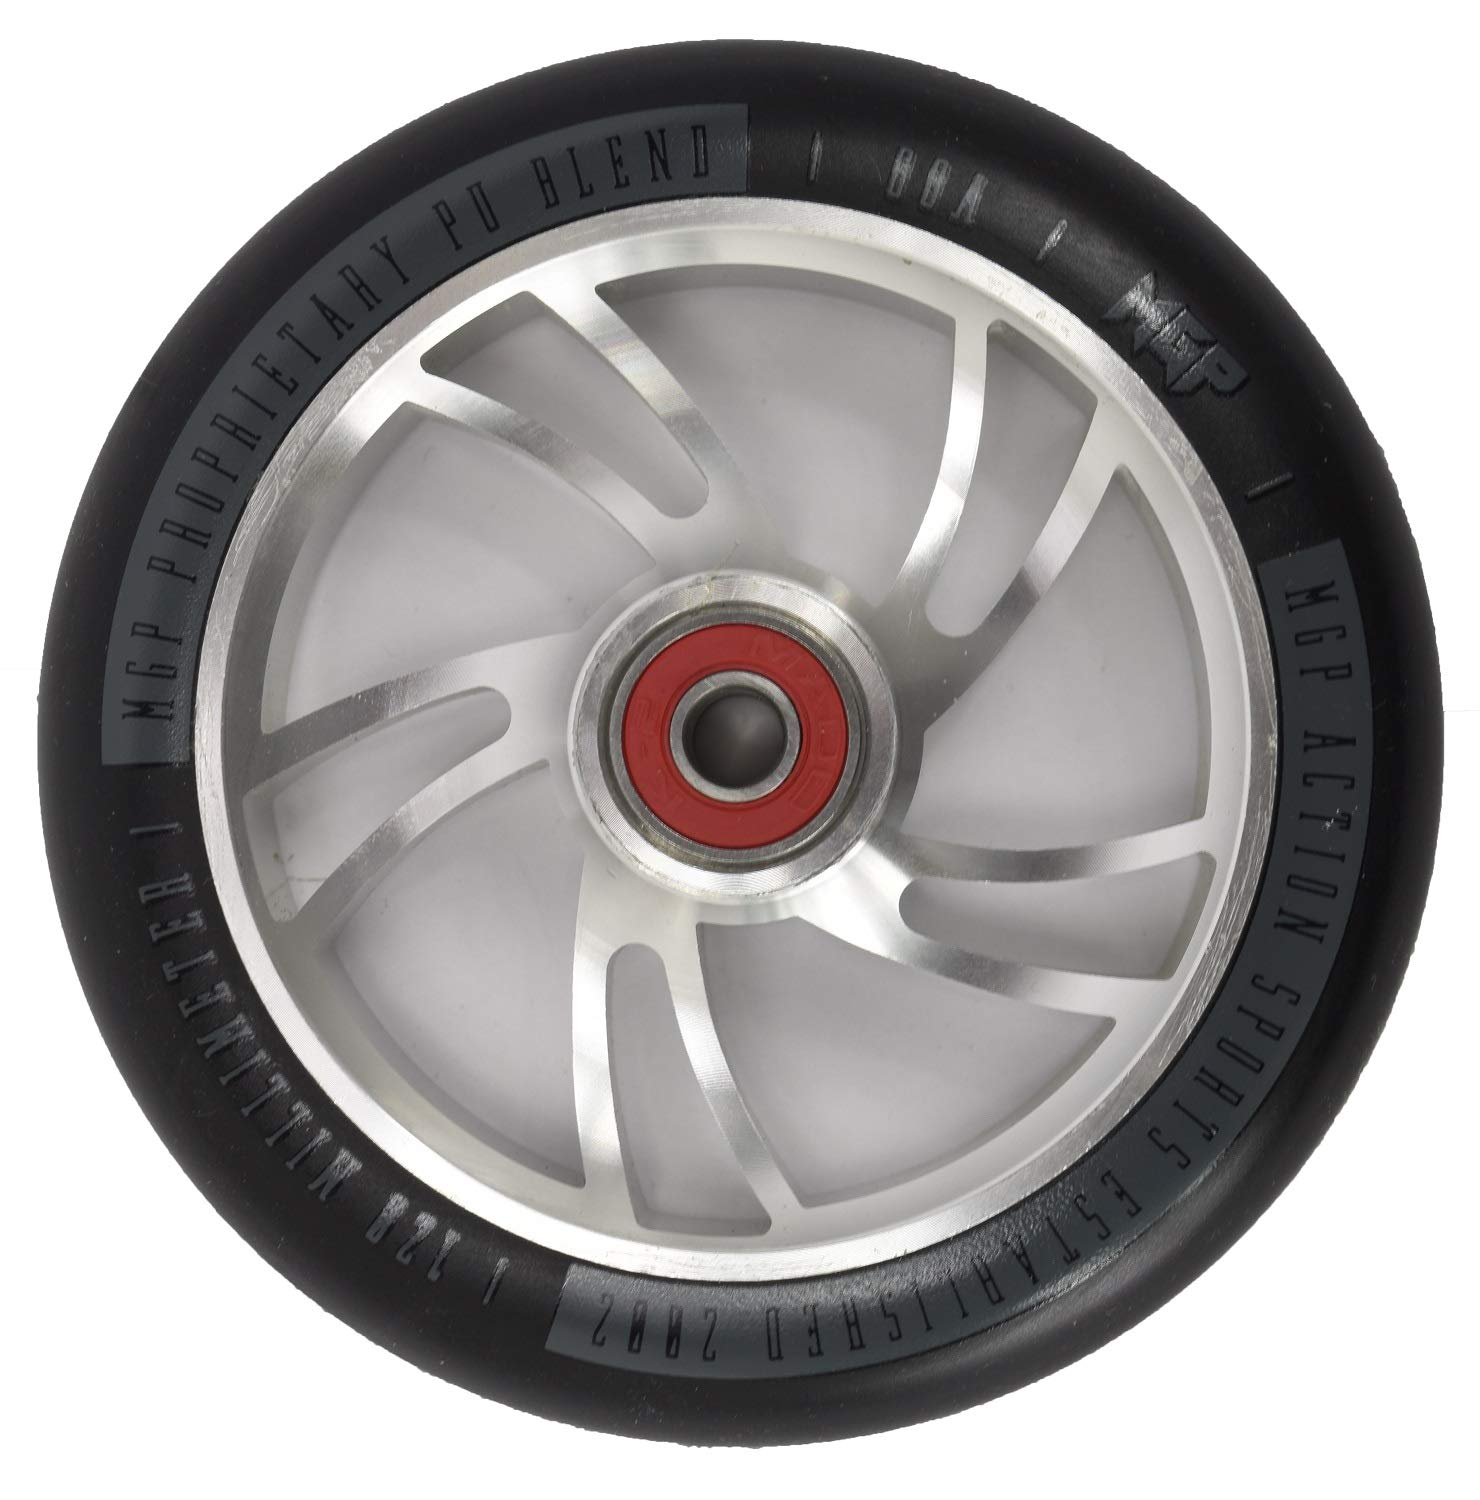 Madd Gear MFX KOS Core 88A - Patinete (120 mm), Color ...